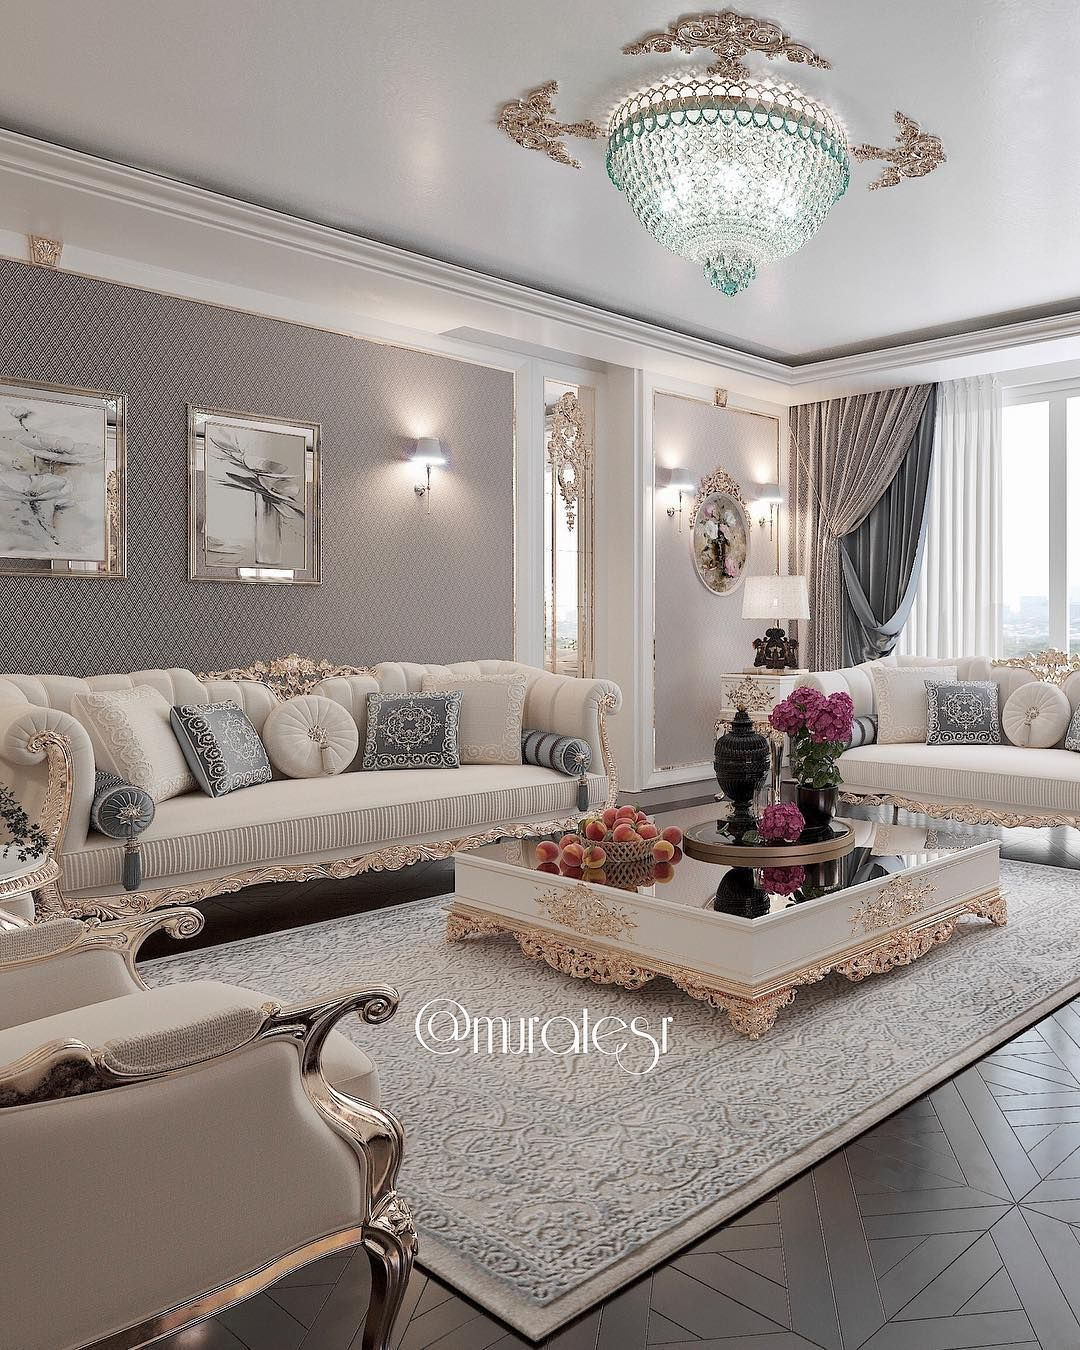 Create An Amazing Living Room Decor With Our Inspirations Visit Spotools Com Luxury Living Room Luxury House Interior Design Fancy Living Rooms